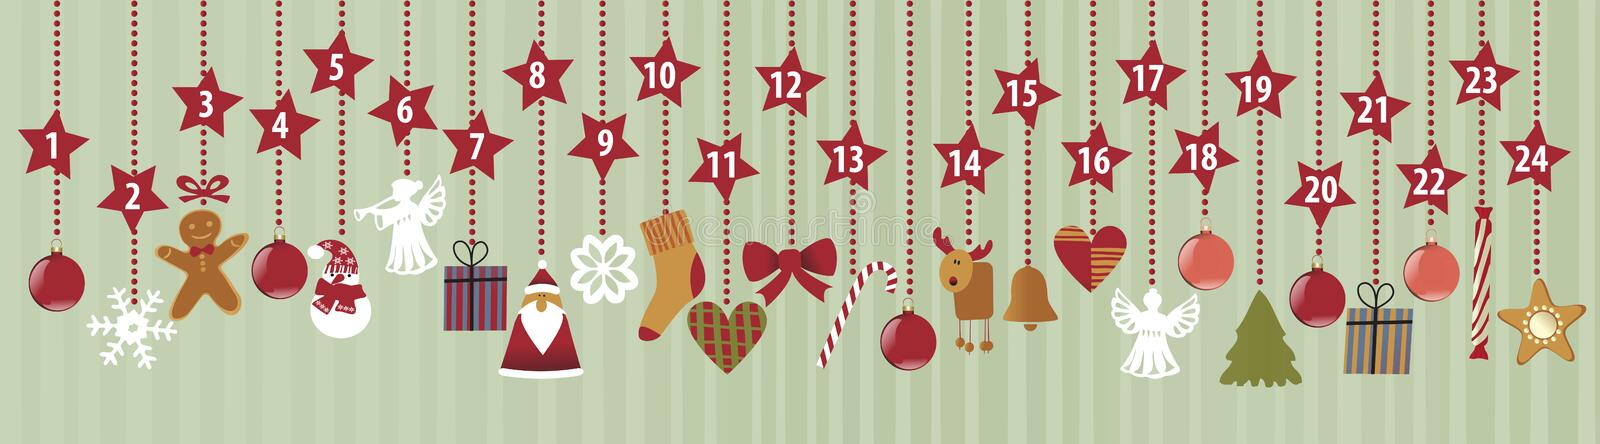 Advent Calendar. With Christmas decorations royalty free illustration